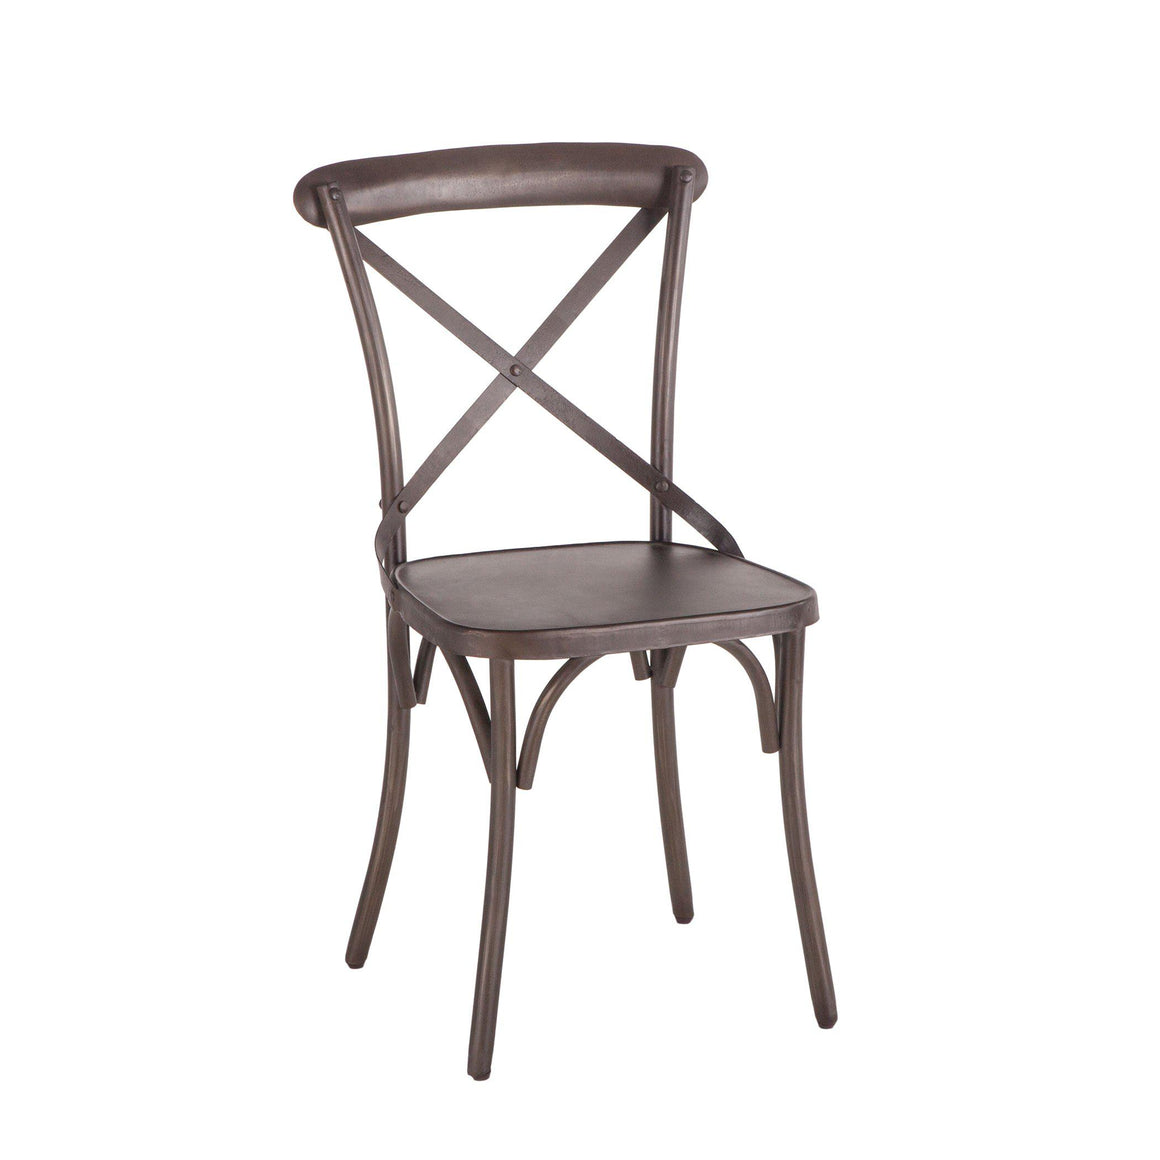 Anderson French Industrial Iron Dining Chair